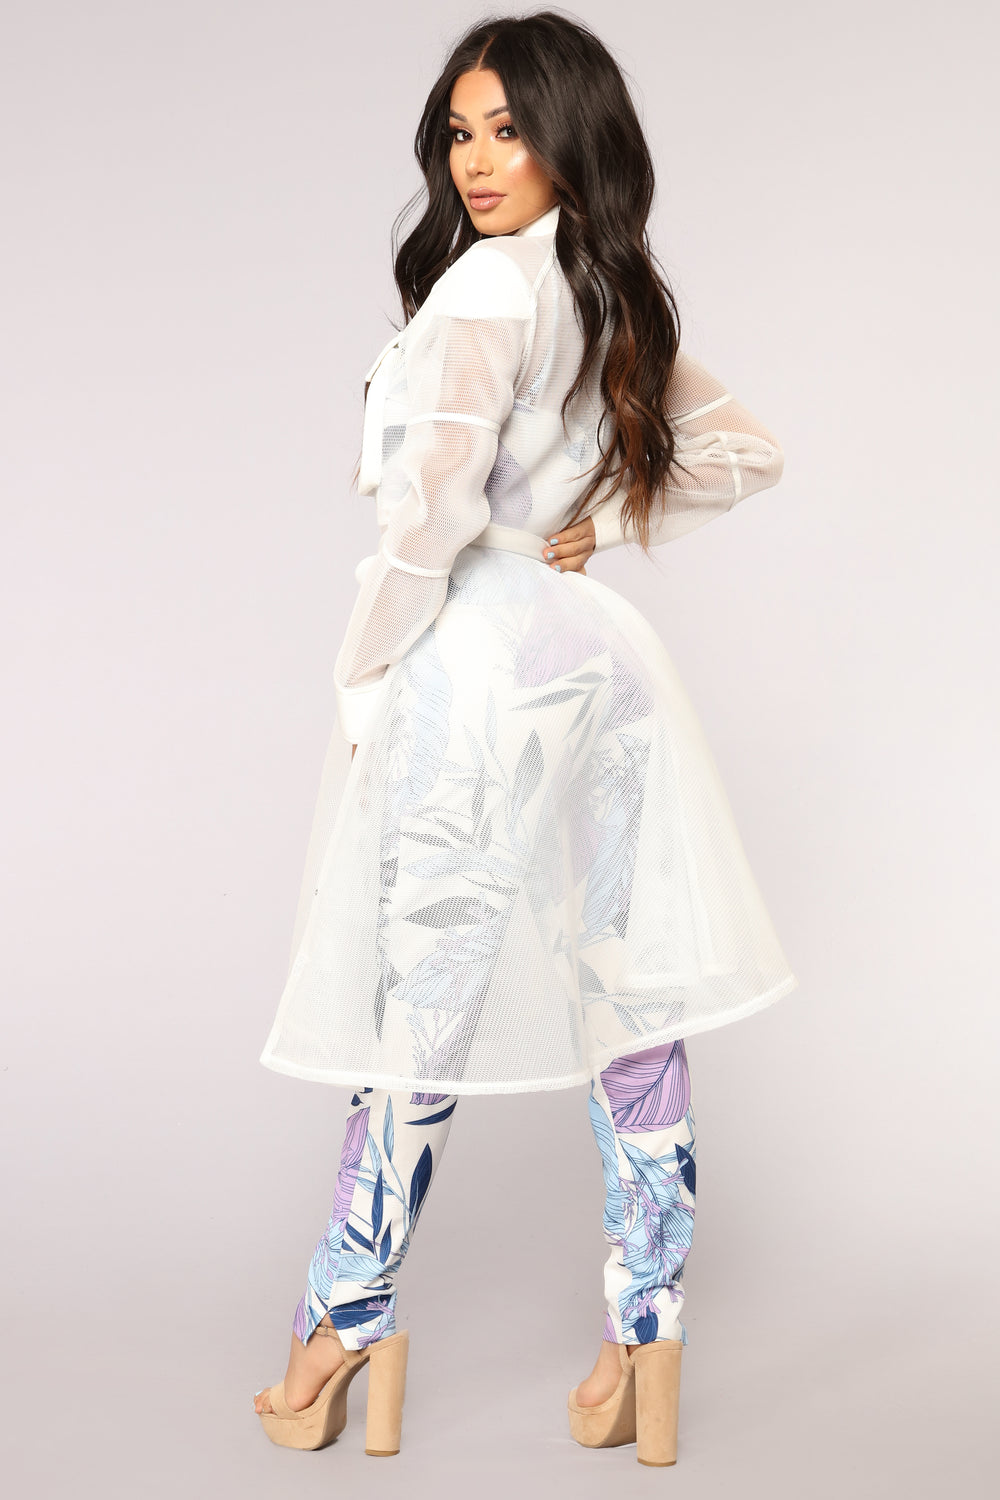 Beyond Fishnet Jacket - White